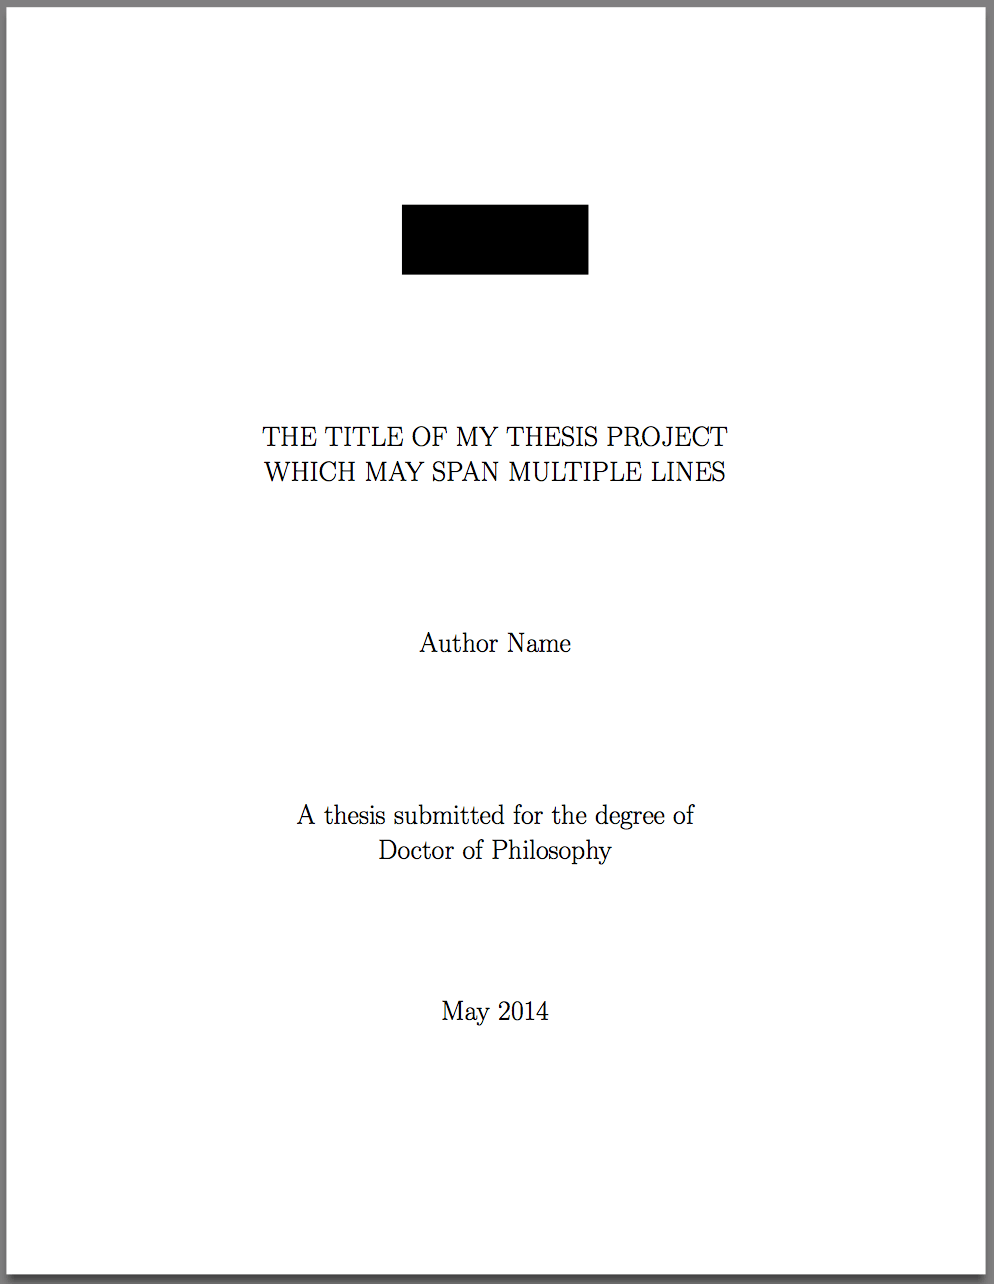 Phd thesis submitted